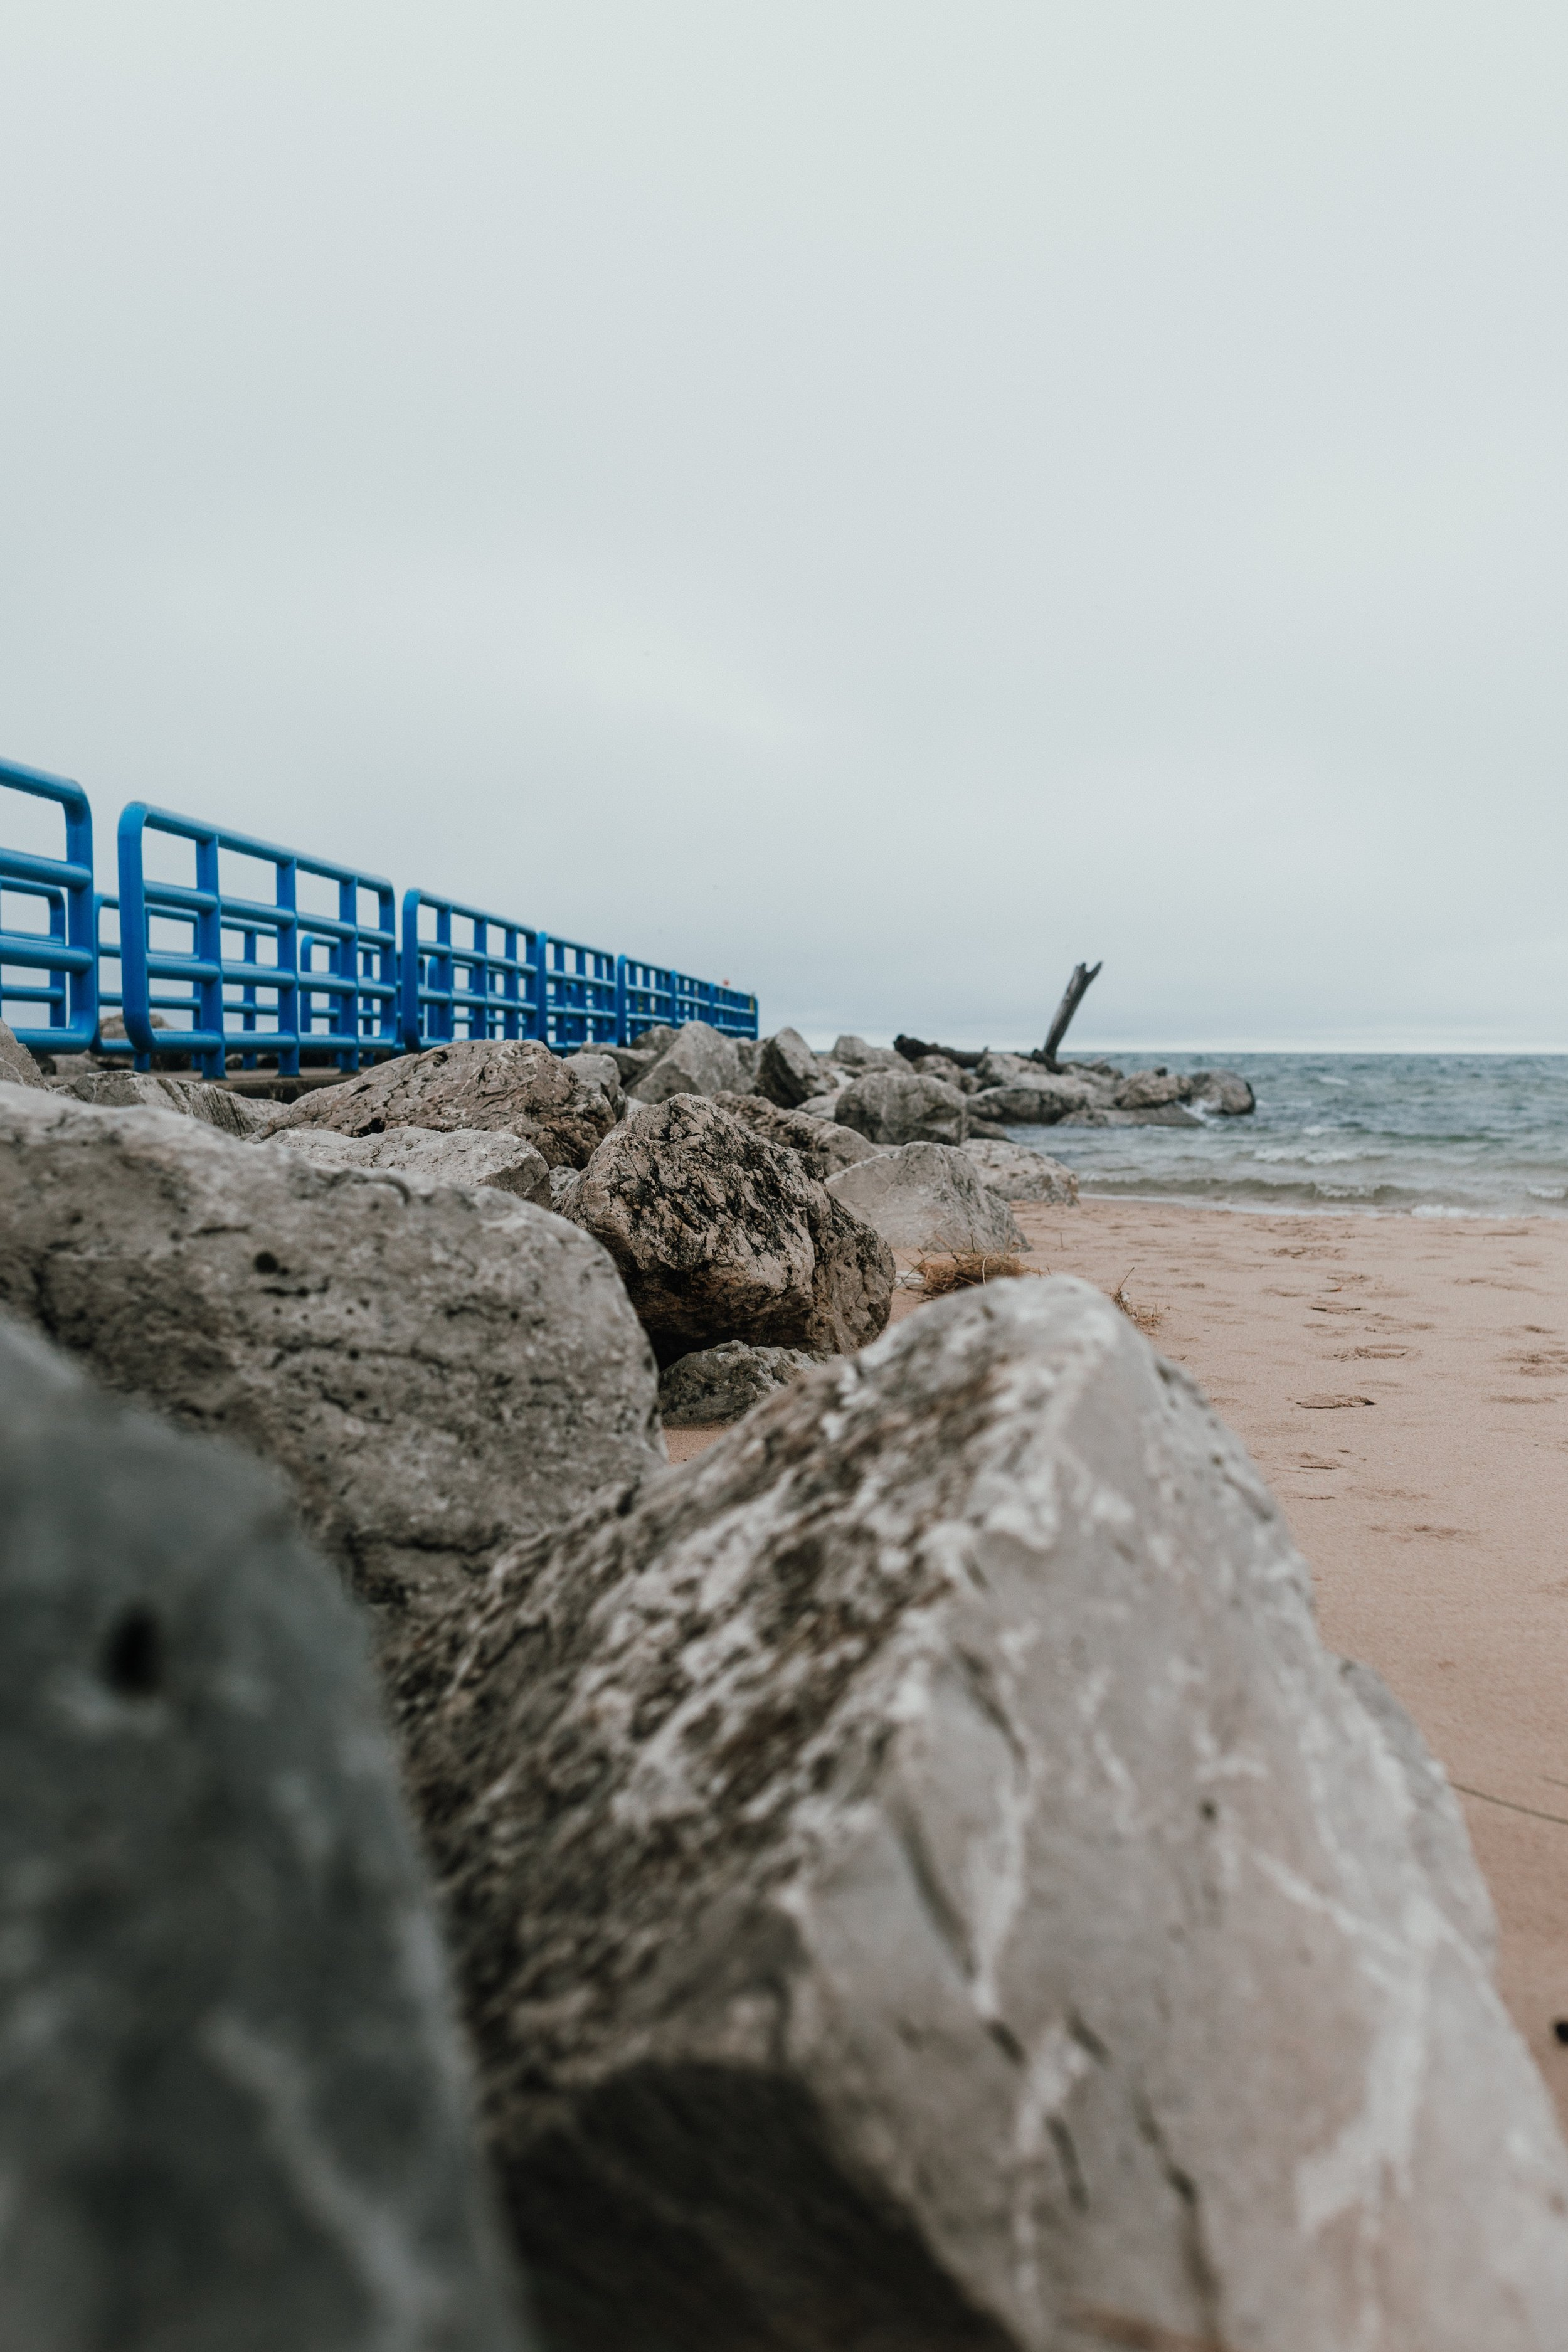 Lake Michigan Photo by  Carissa Weiser  on  Unsplash